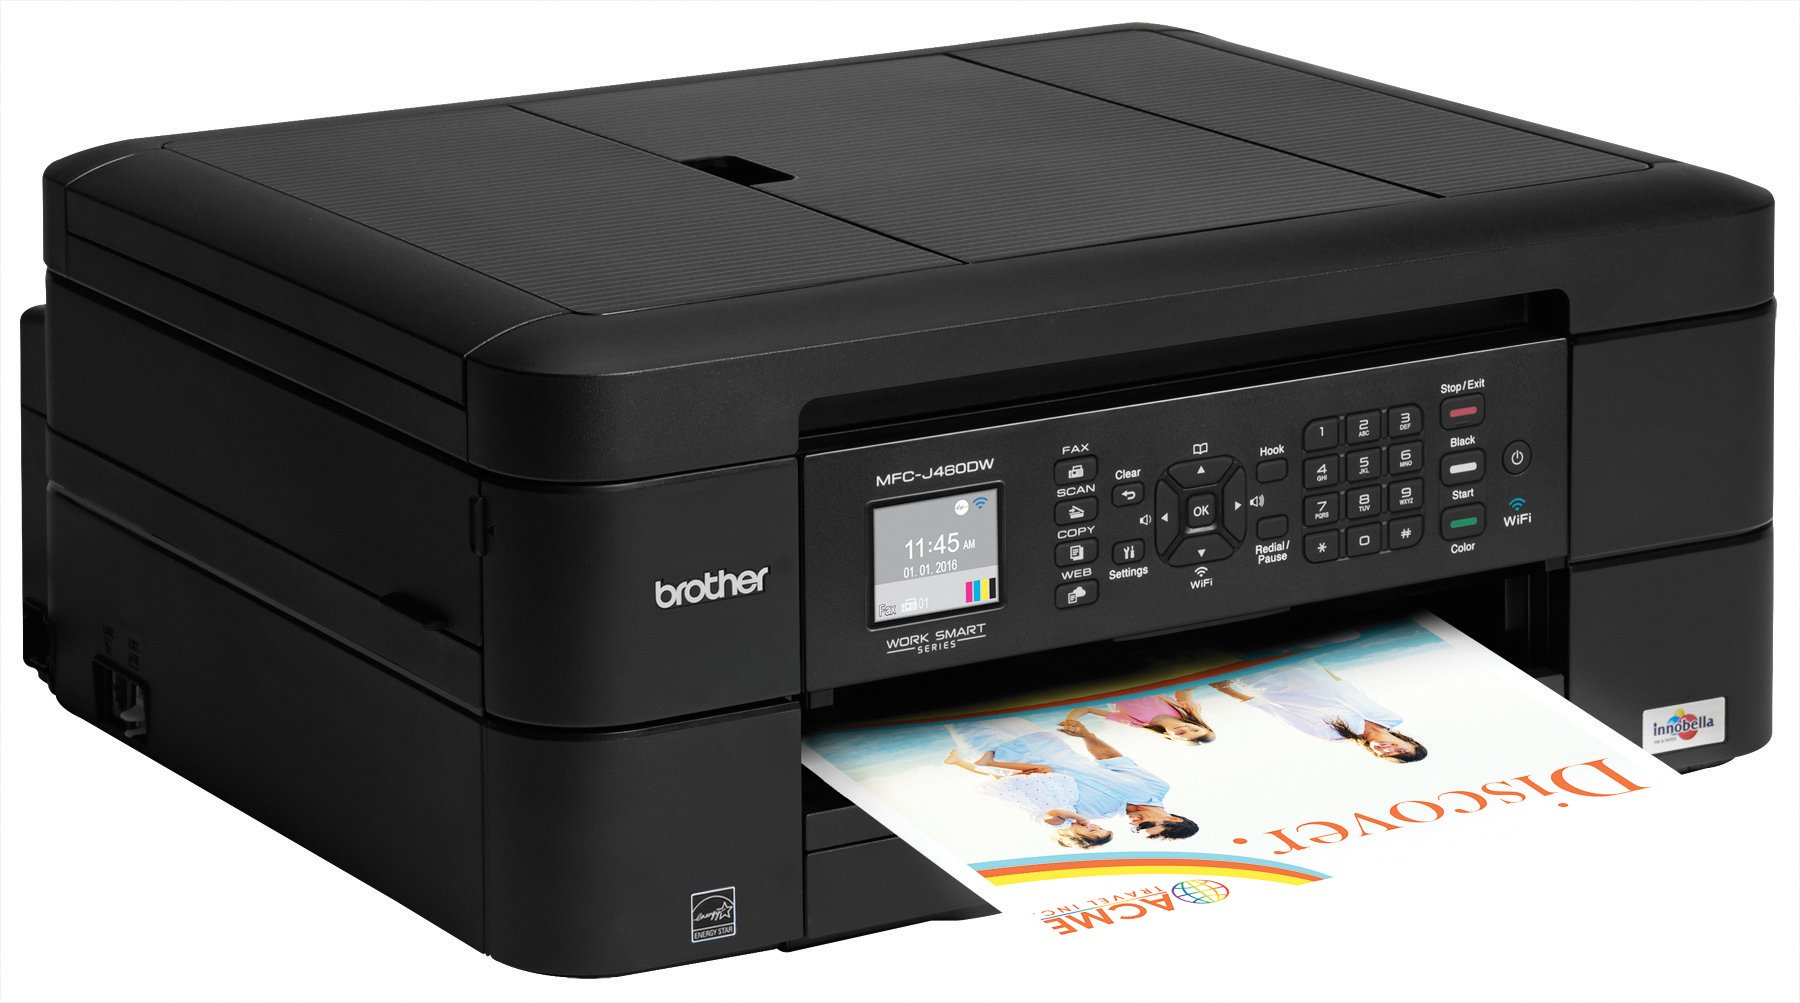 Brother Printer MFCJ460DW Wireless Color Inkjet Printer with Scanner, Copier & Fax, Amazon Dash Replenishment Enabled by Brother